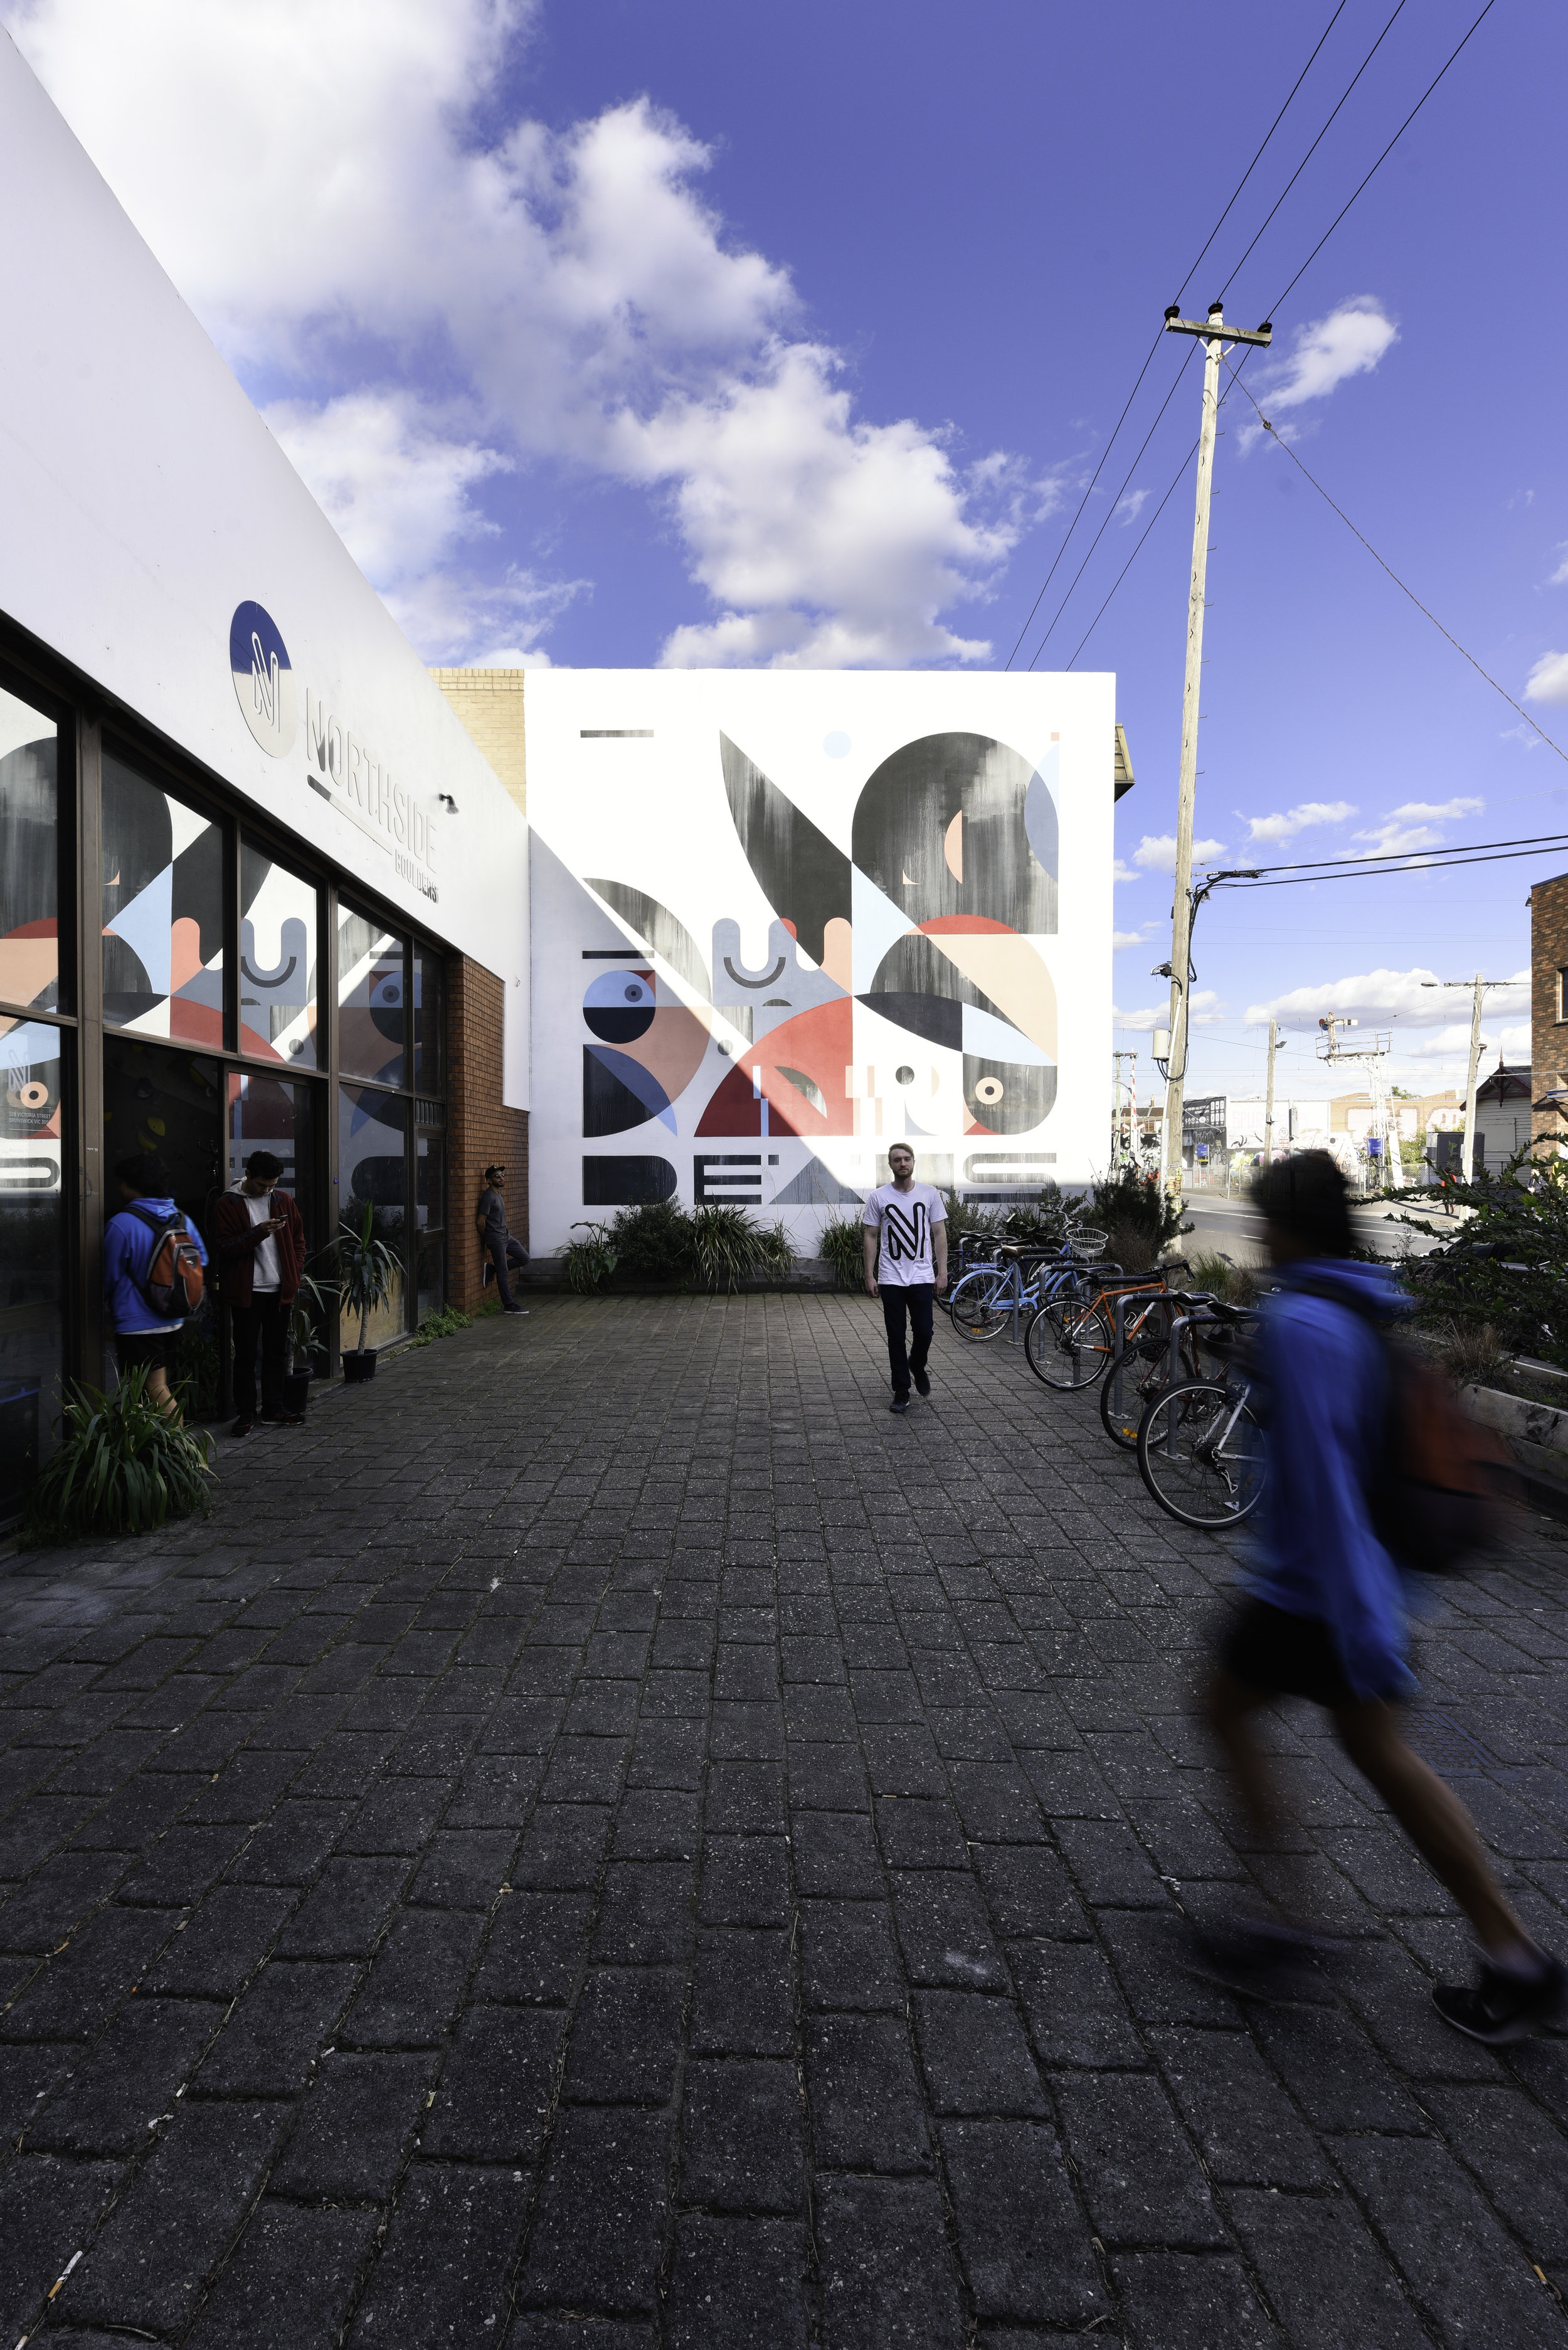 green sheep collective commercial architect melbourne community bouldering gymnasium bike parking